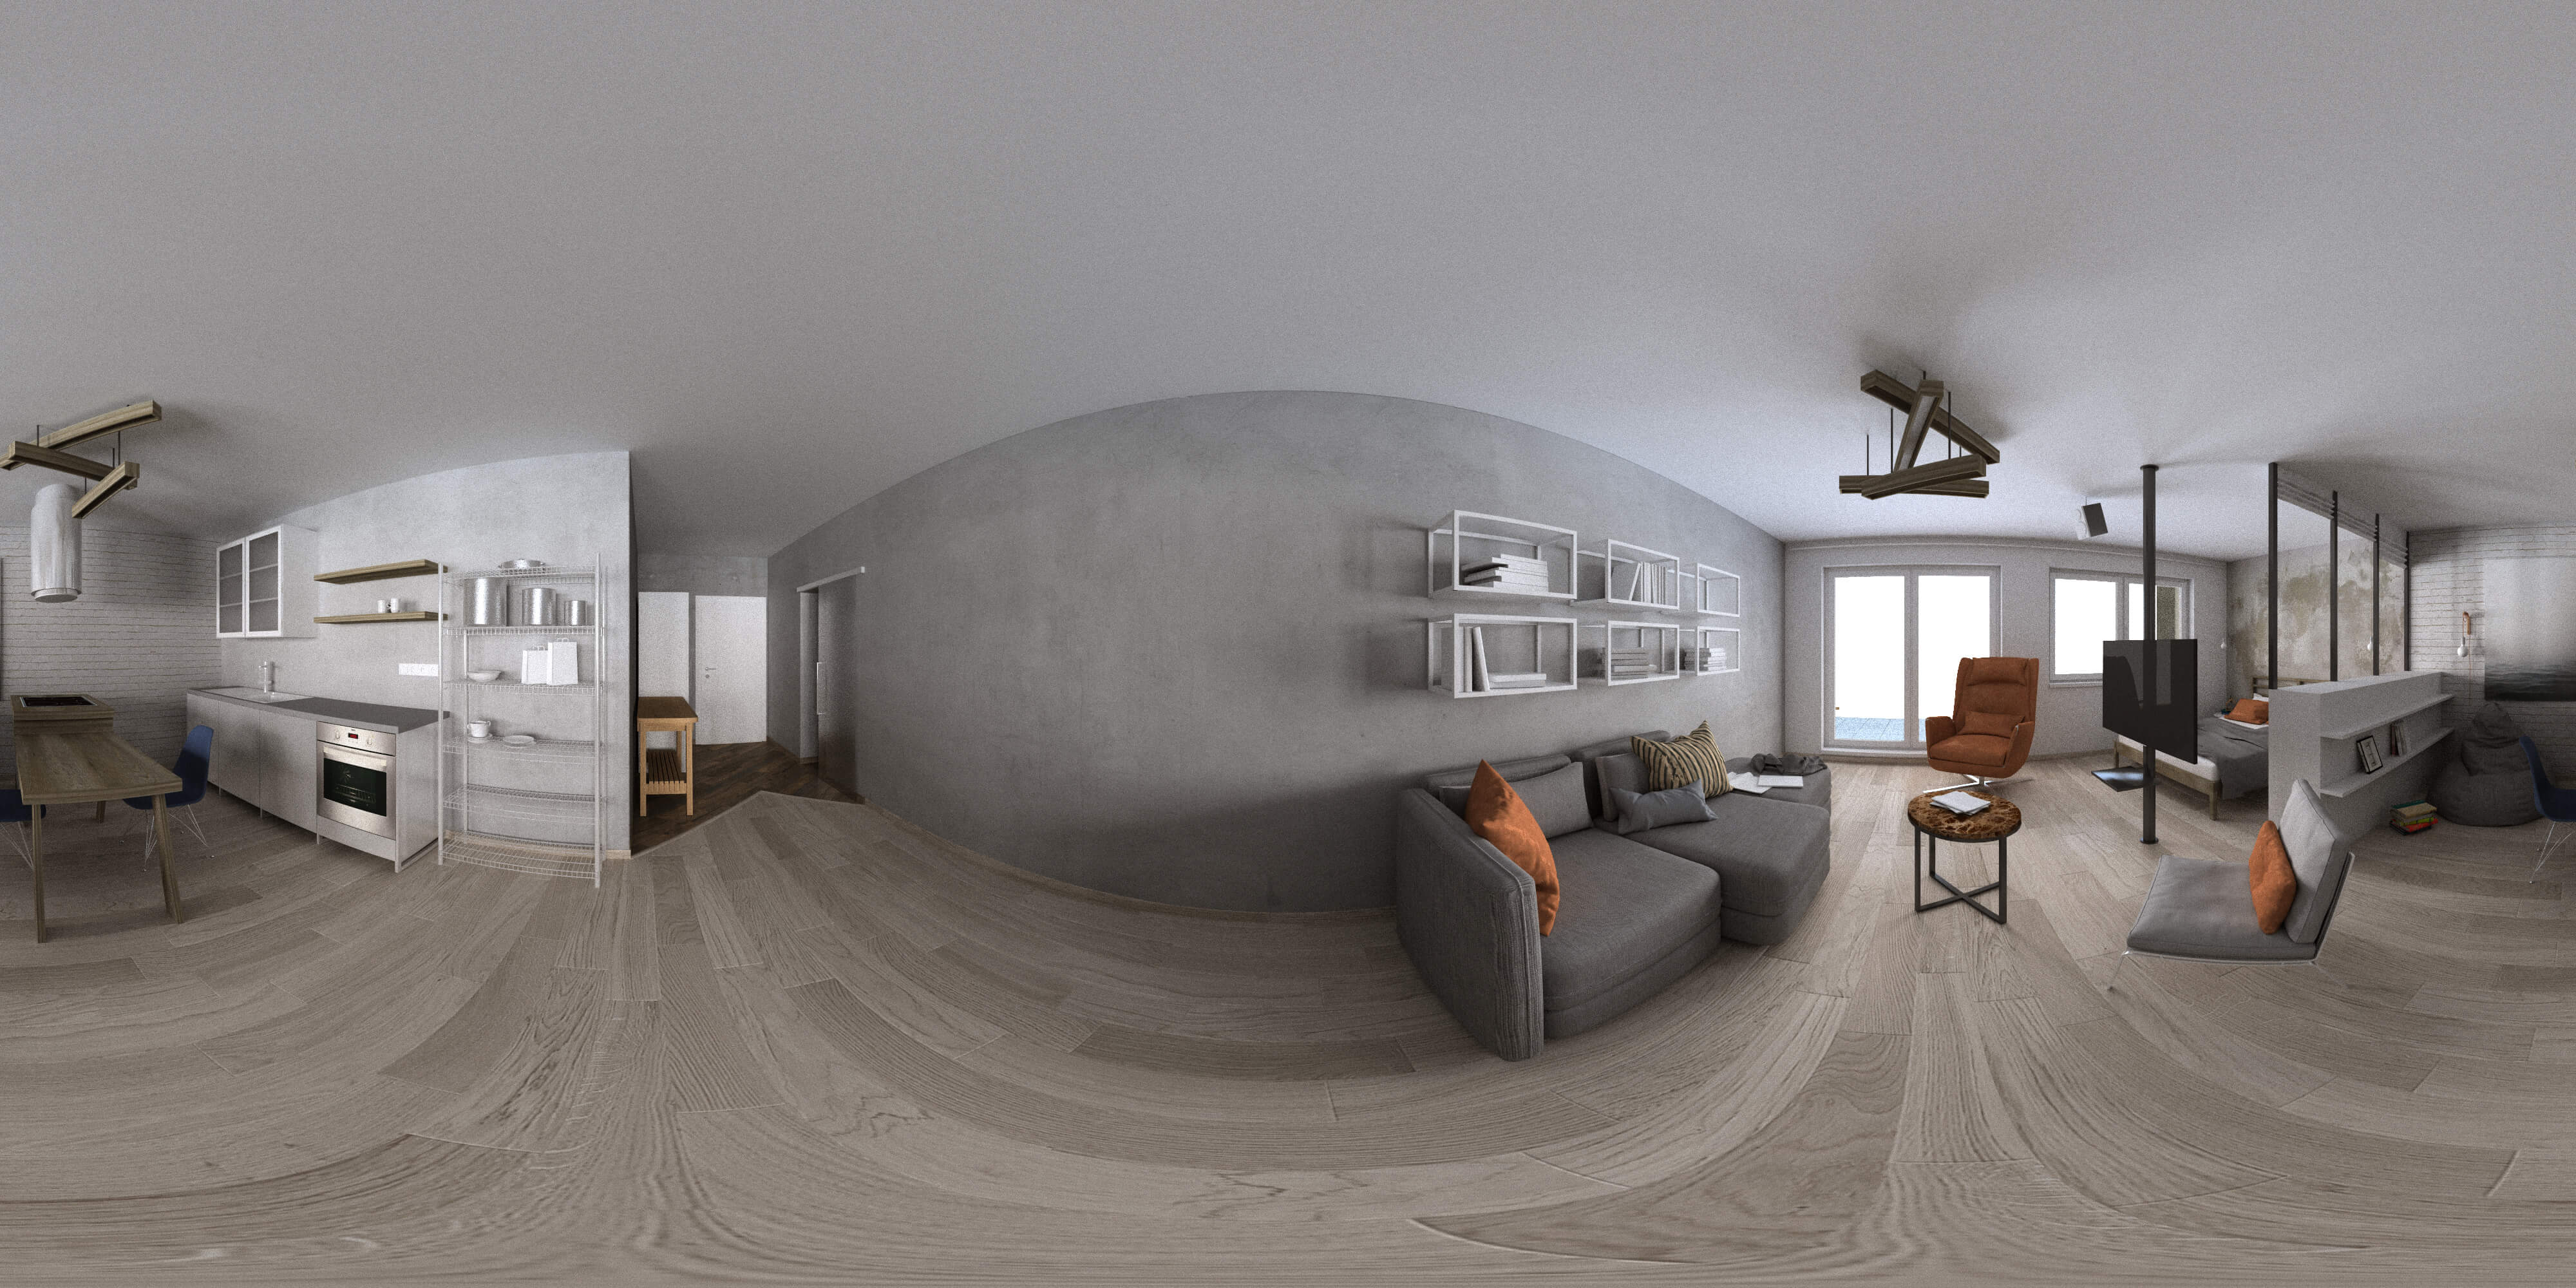 https://www.allplan.com/fileadmin/user_upload/shared-files/products/architecture/2020-features/10_Panoramic_rendering_Interior_sky80min_t.jpg